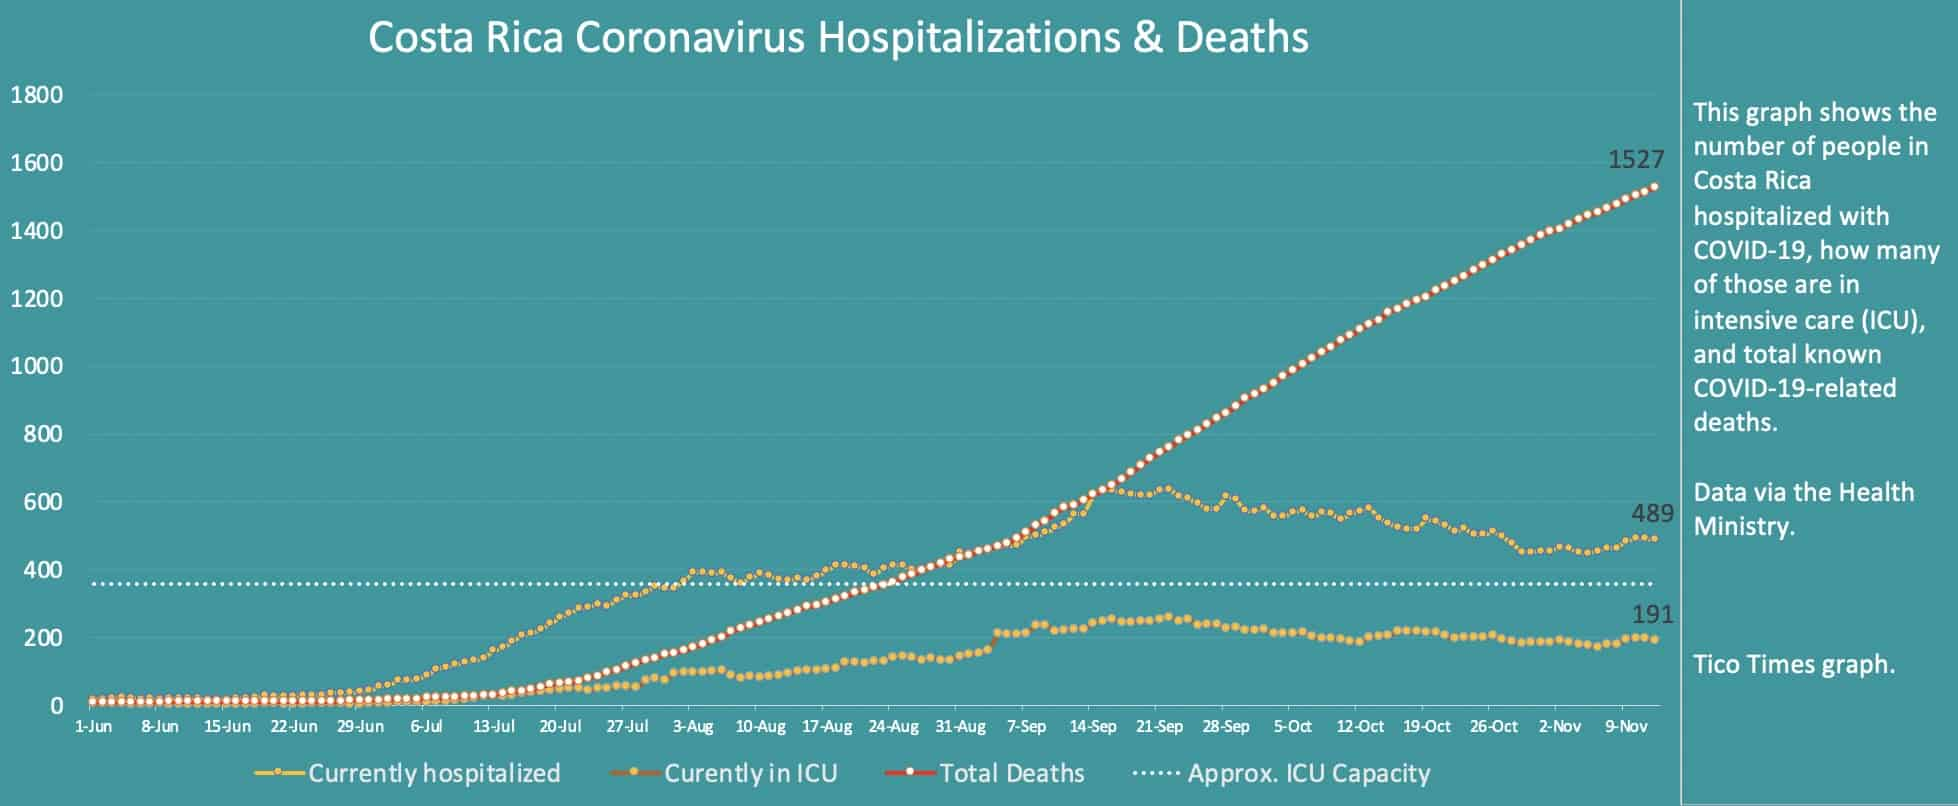 Costa Rica coronavirus hospitalizations and deaths on November 12, 2020